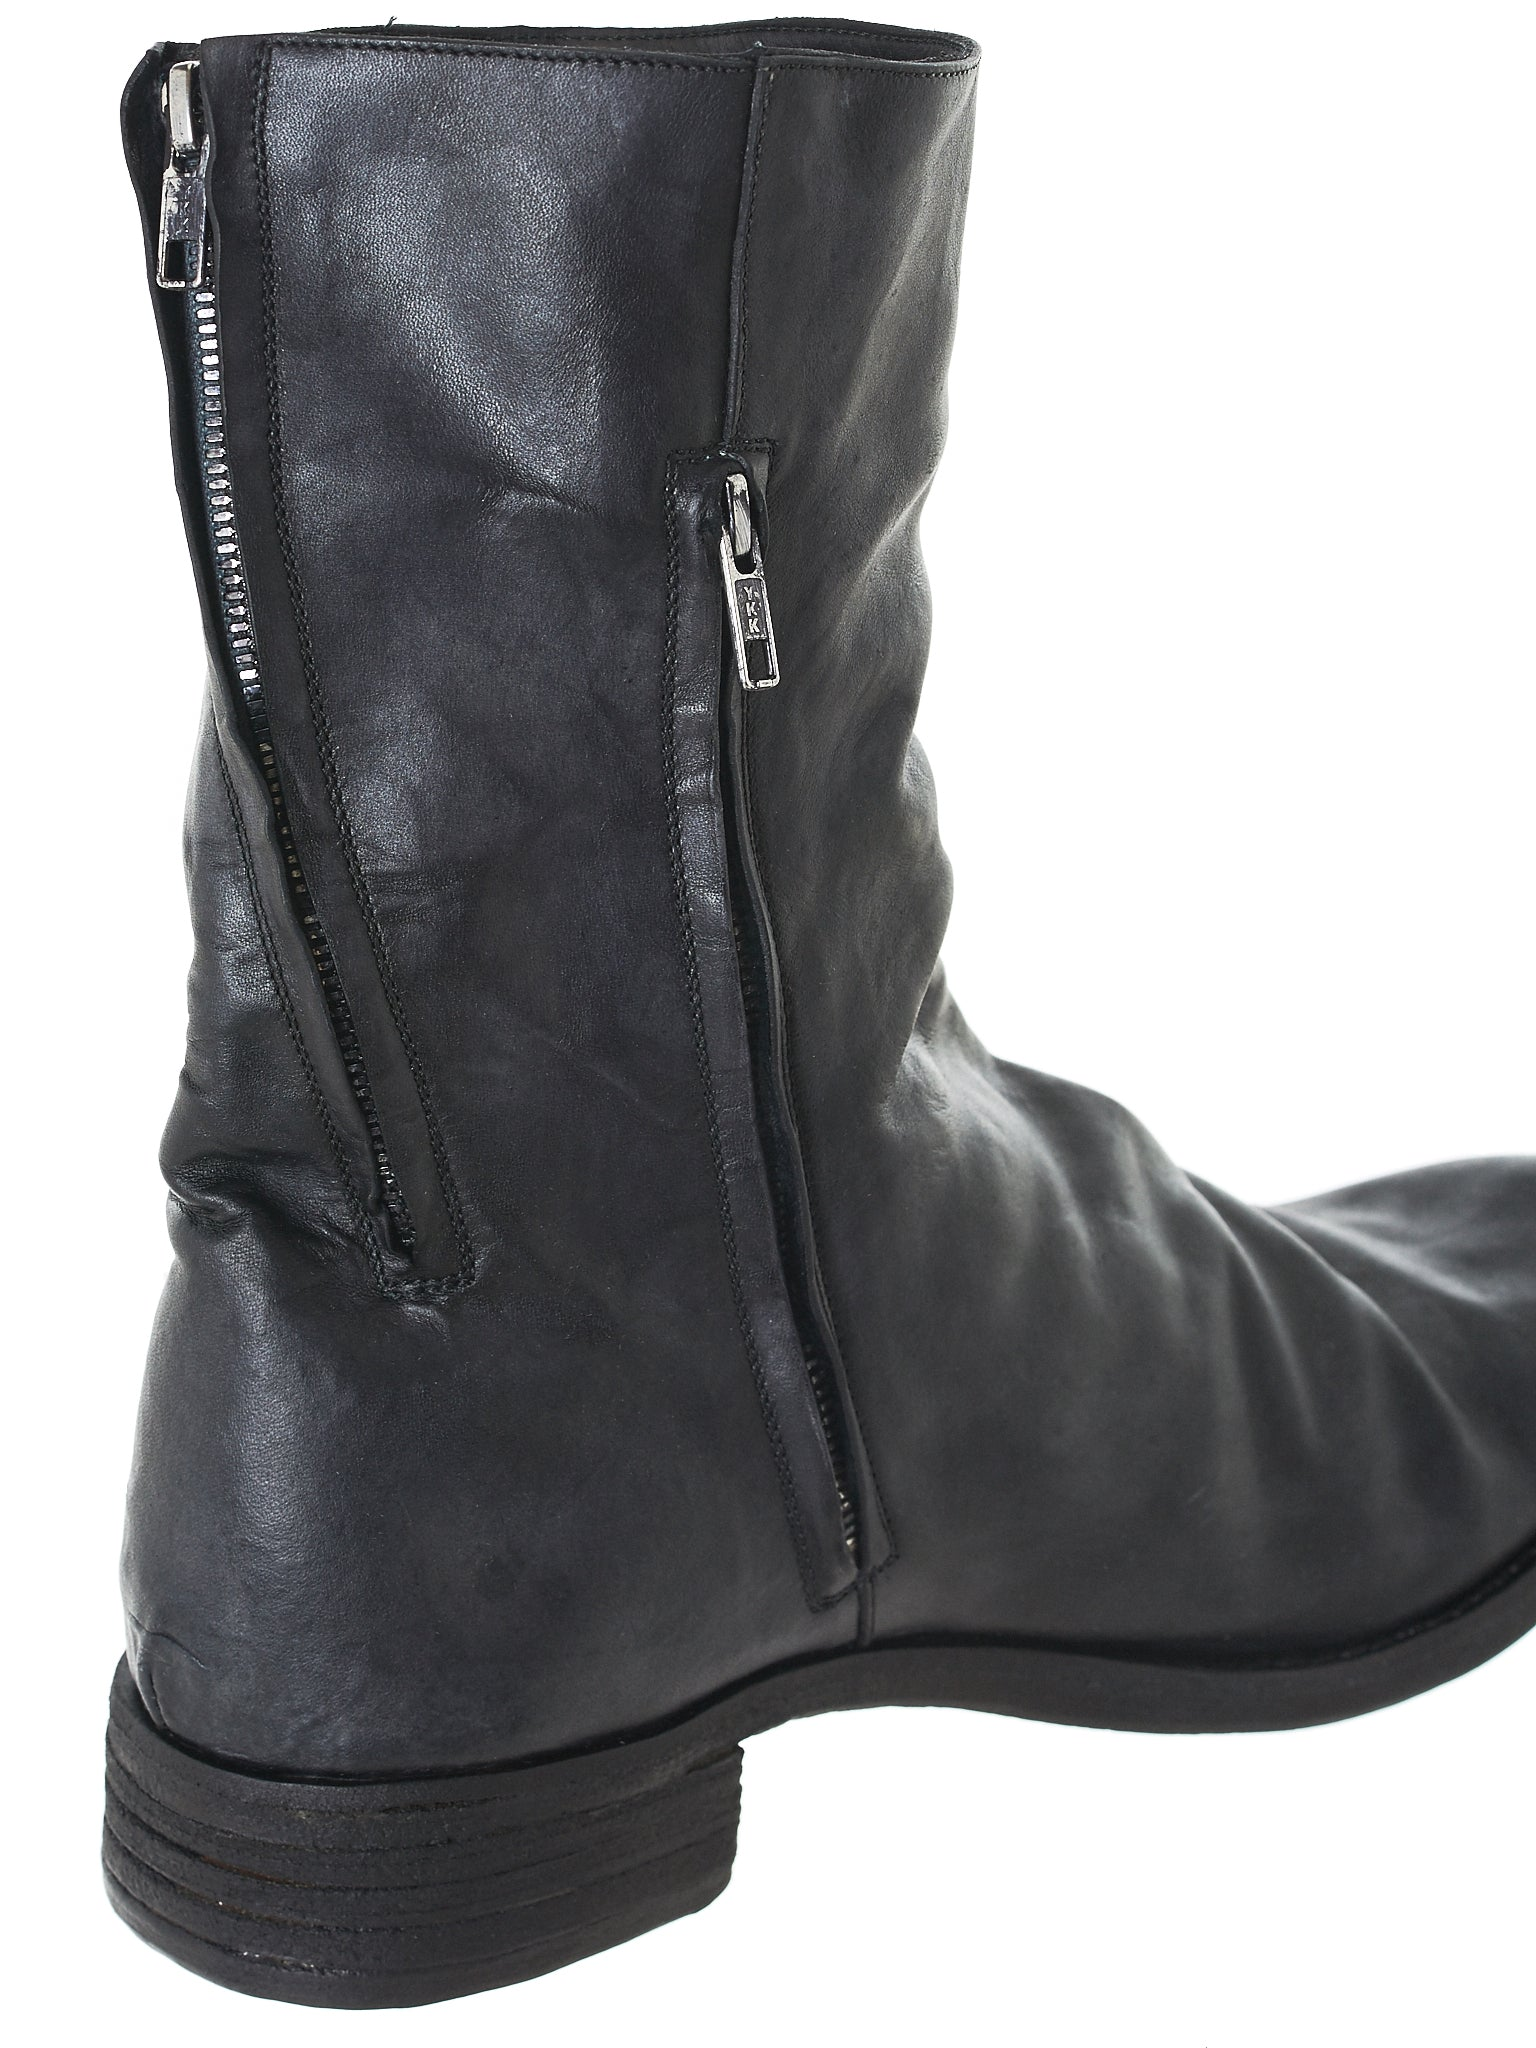 A Diciannoveventitre Boot - Hlorenzo detail 3